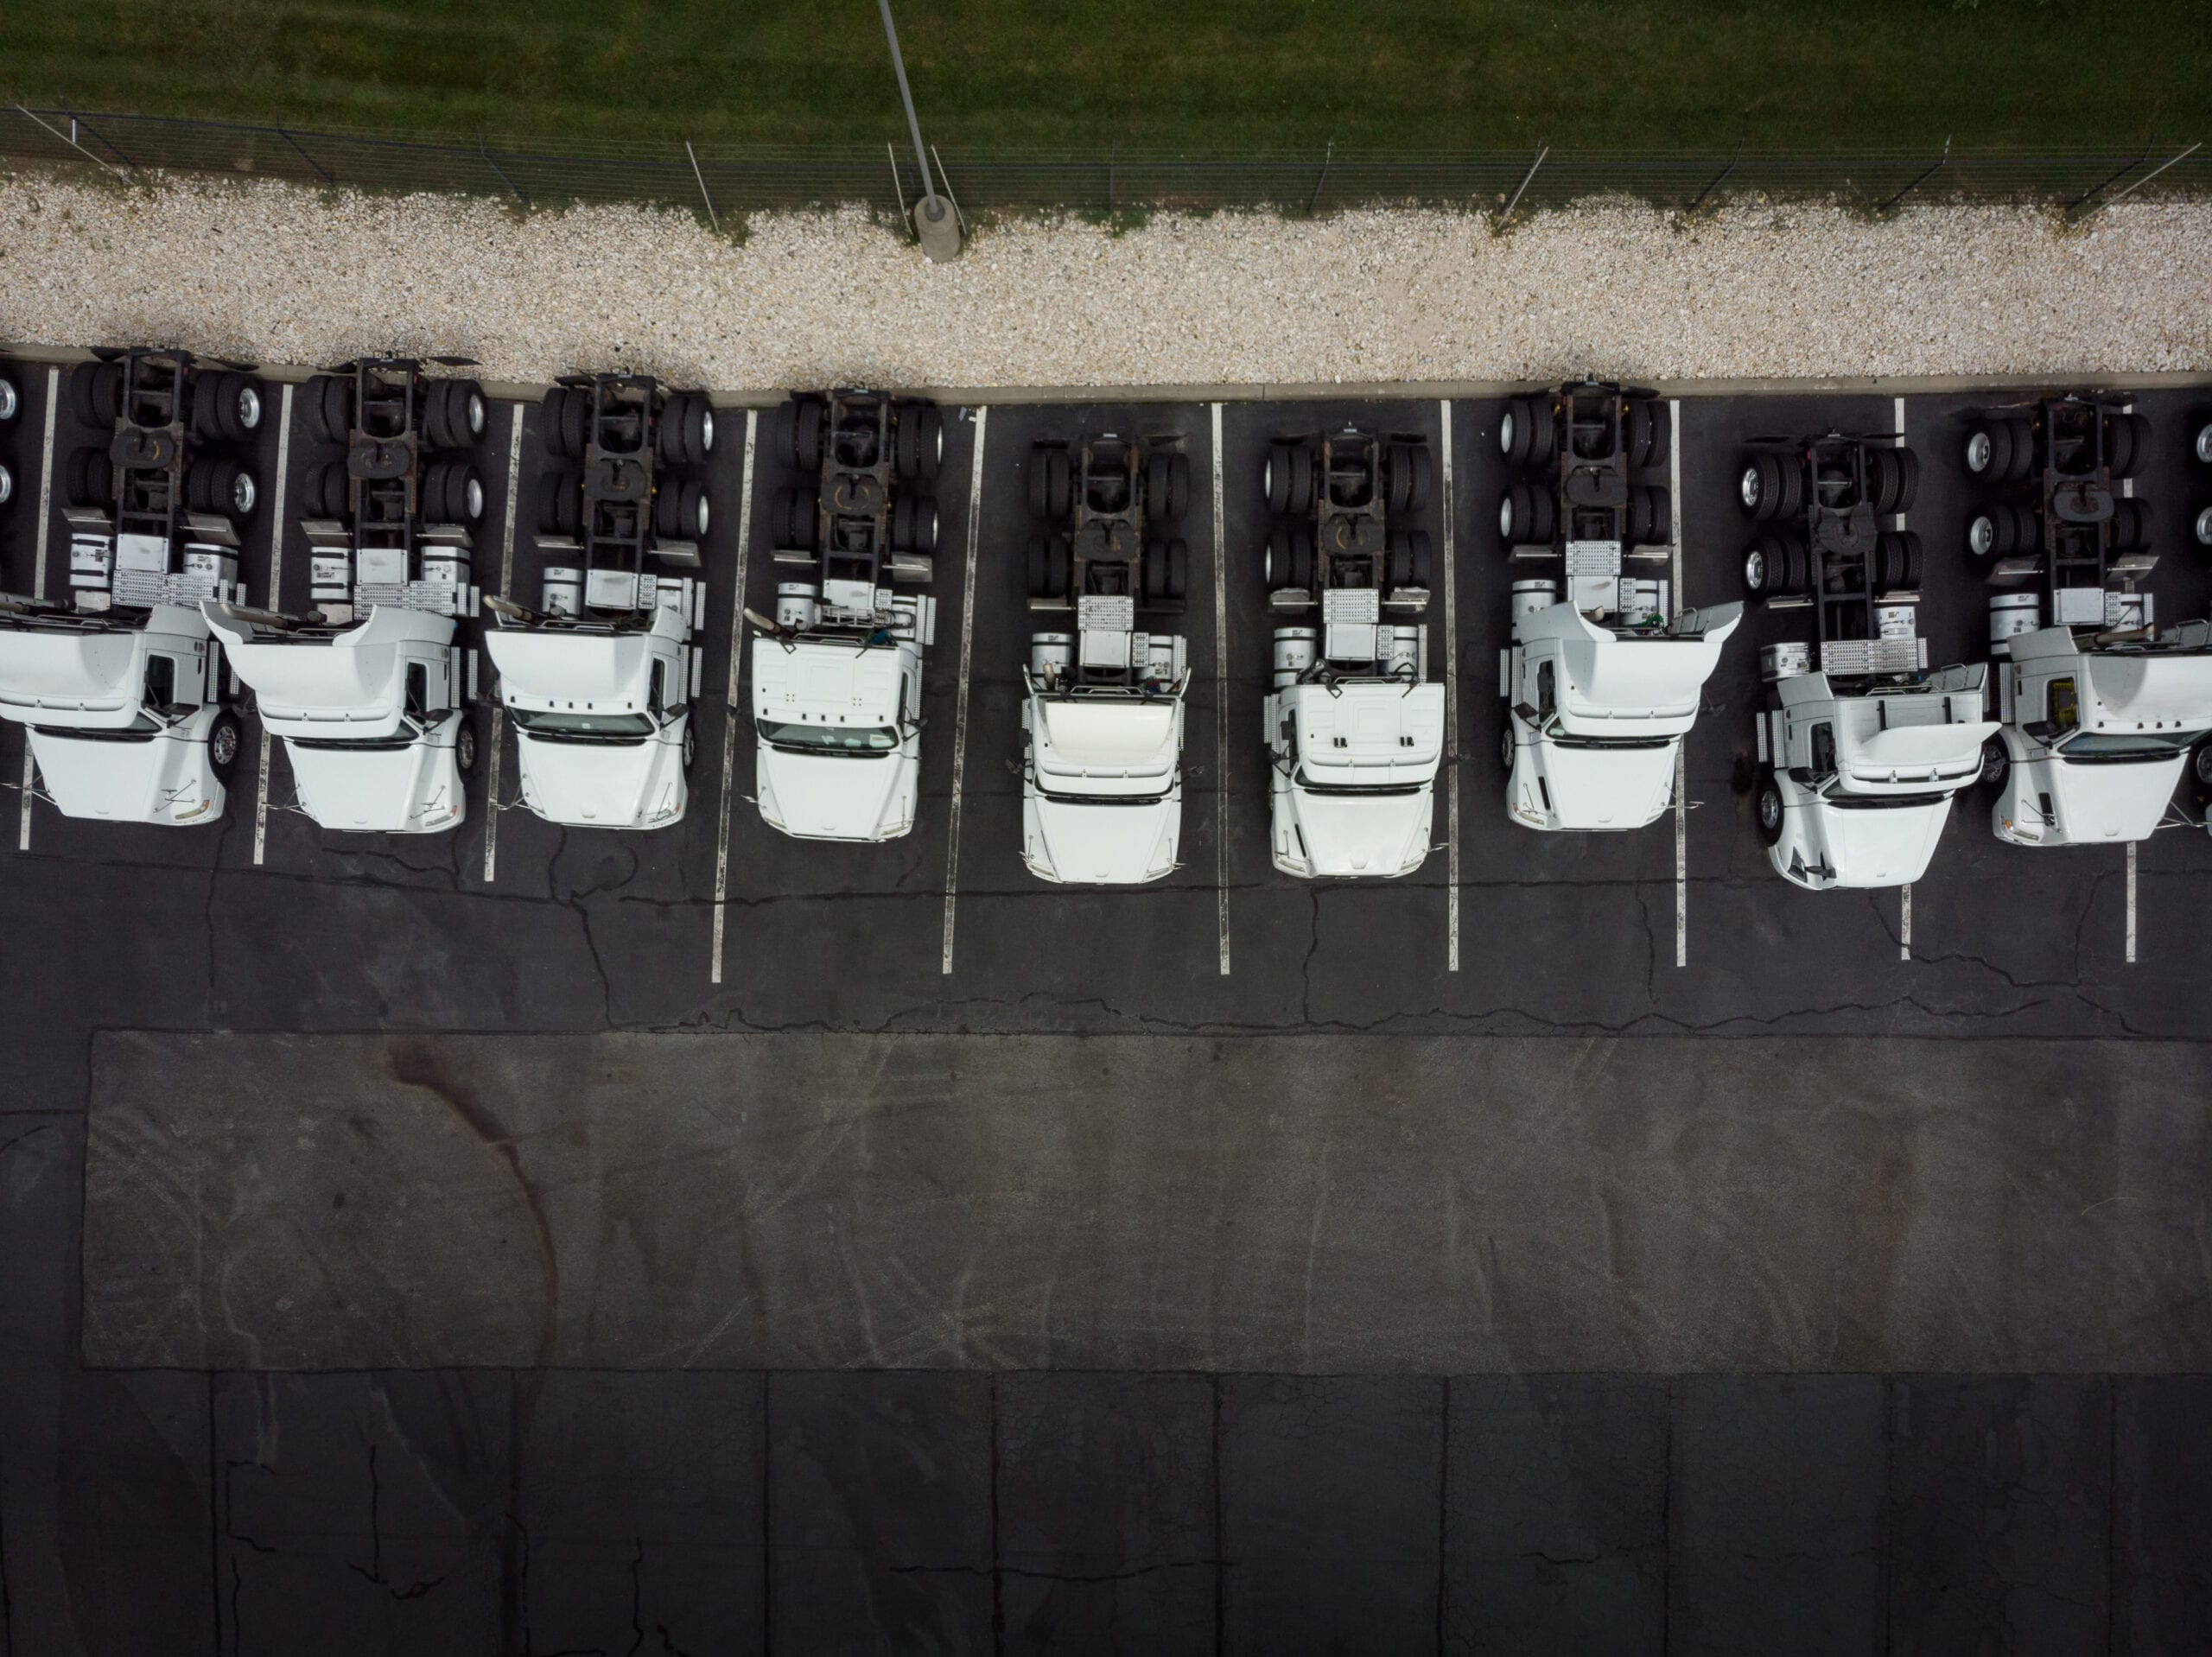 Fleet of white 18-wheeler semi-trucks overhead view drone photography